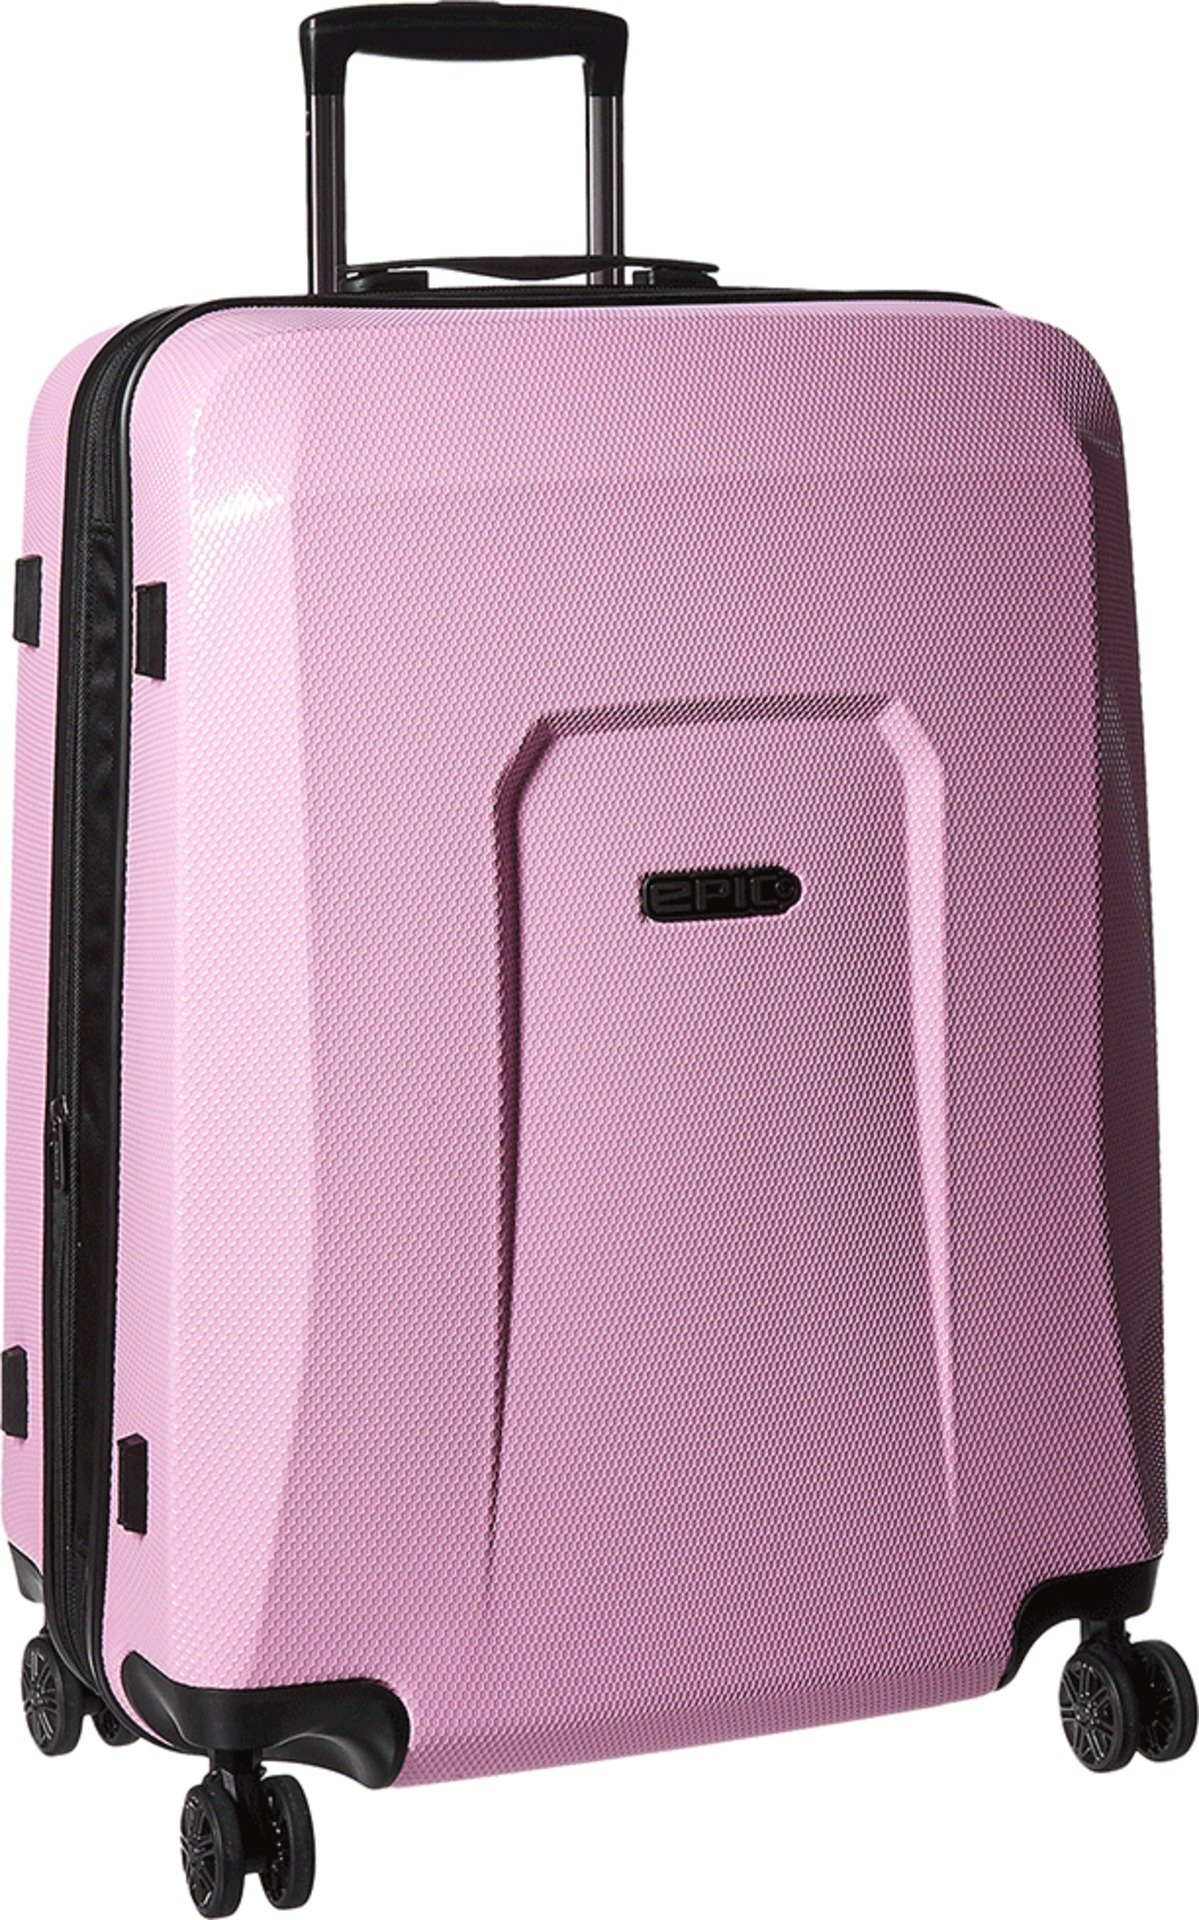 EPIC Travelgear Unisex HDX EX 29'' Trolley Gloss Pink One Size